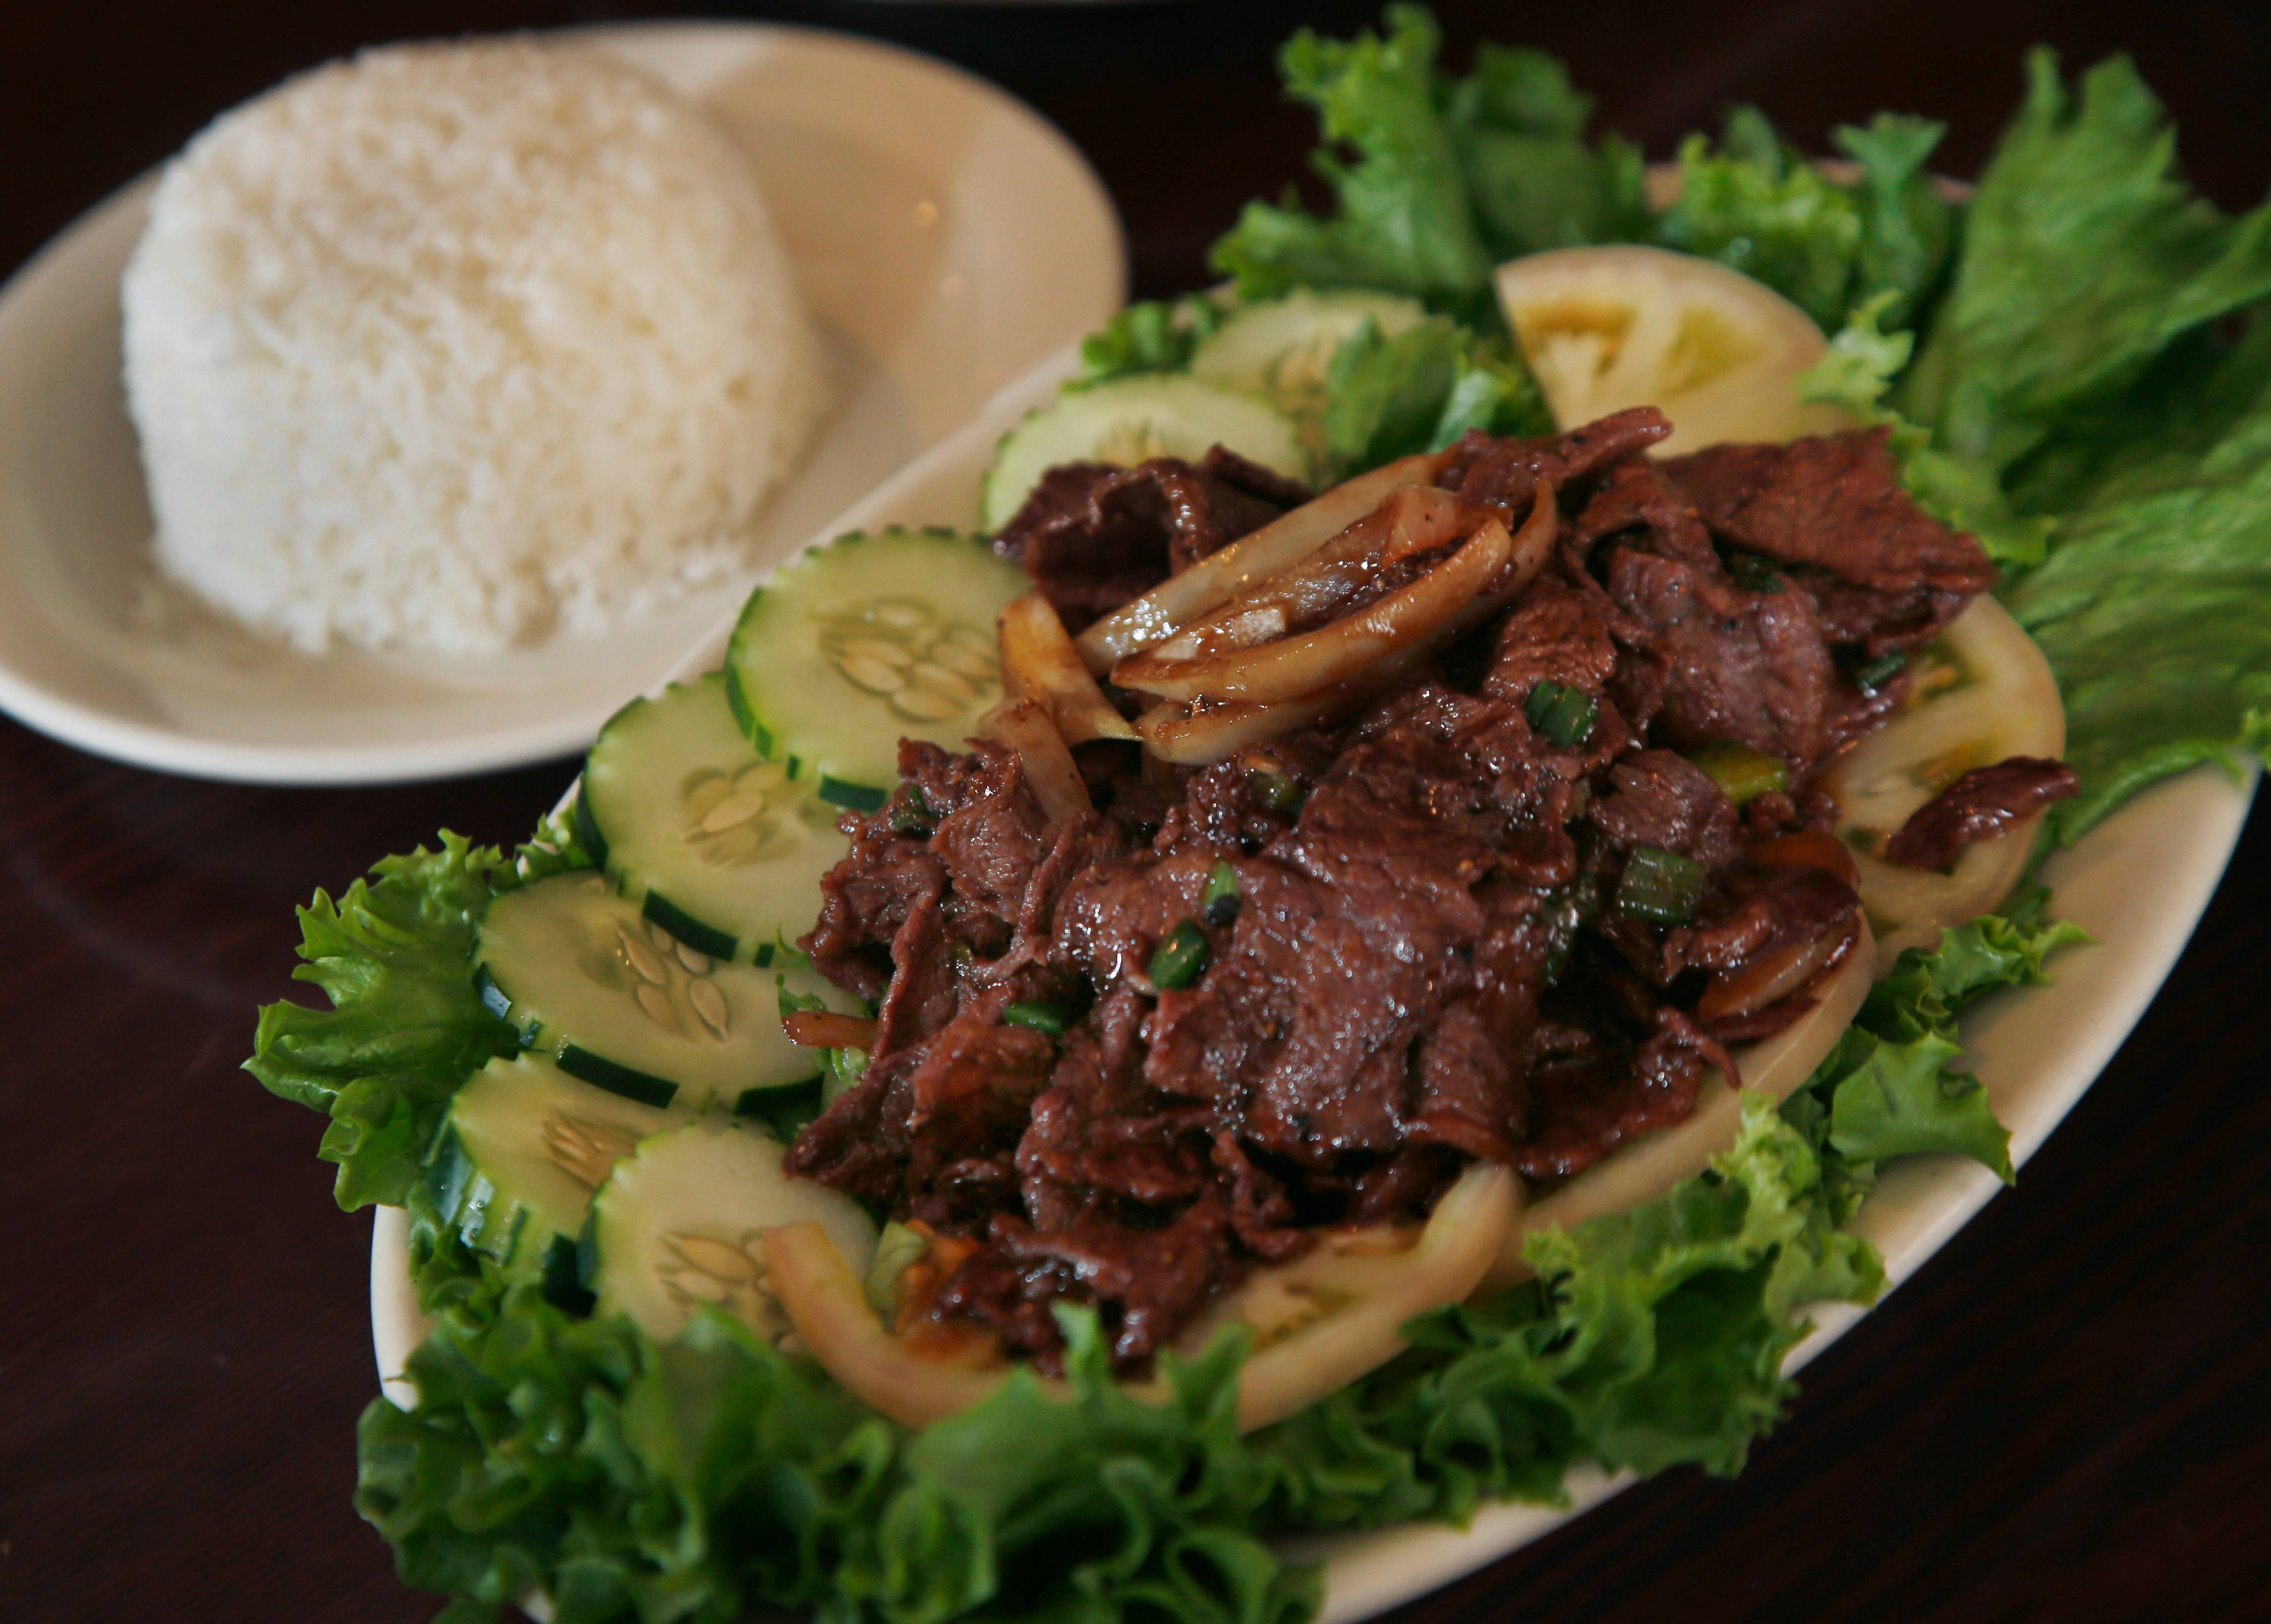 Try the beef loc lac at Simply Khmer, a Cambodian restaurant in Lowell, Mass. The classic Cambodian dish consists of seared beef that has been marinated and cooked in a savory sauce made with garlic, soy sauce, sugar and other ingredients.